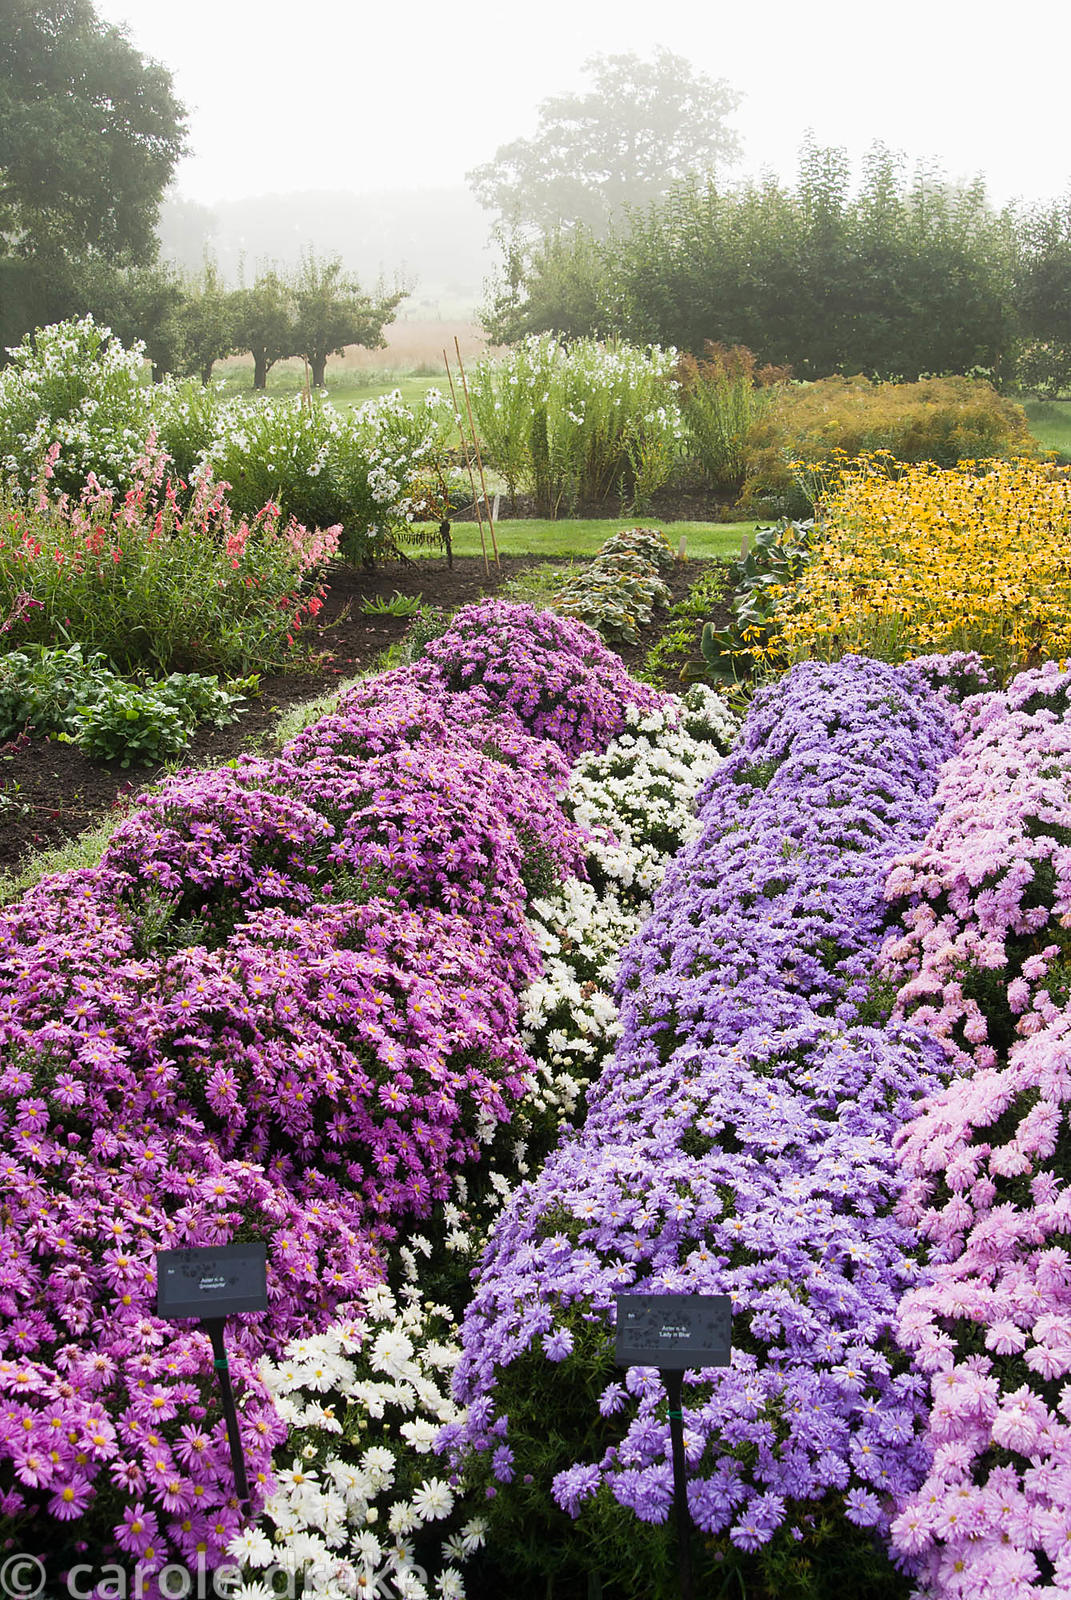 Lines of asters in stock beds with fruit trees behind and the misty landscape beyond. Waterperry Gardens, Wheatley, Oxfordshi...